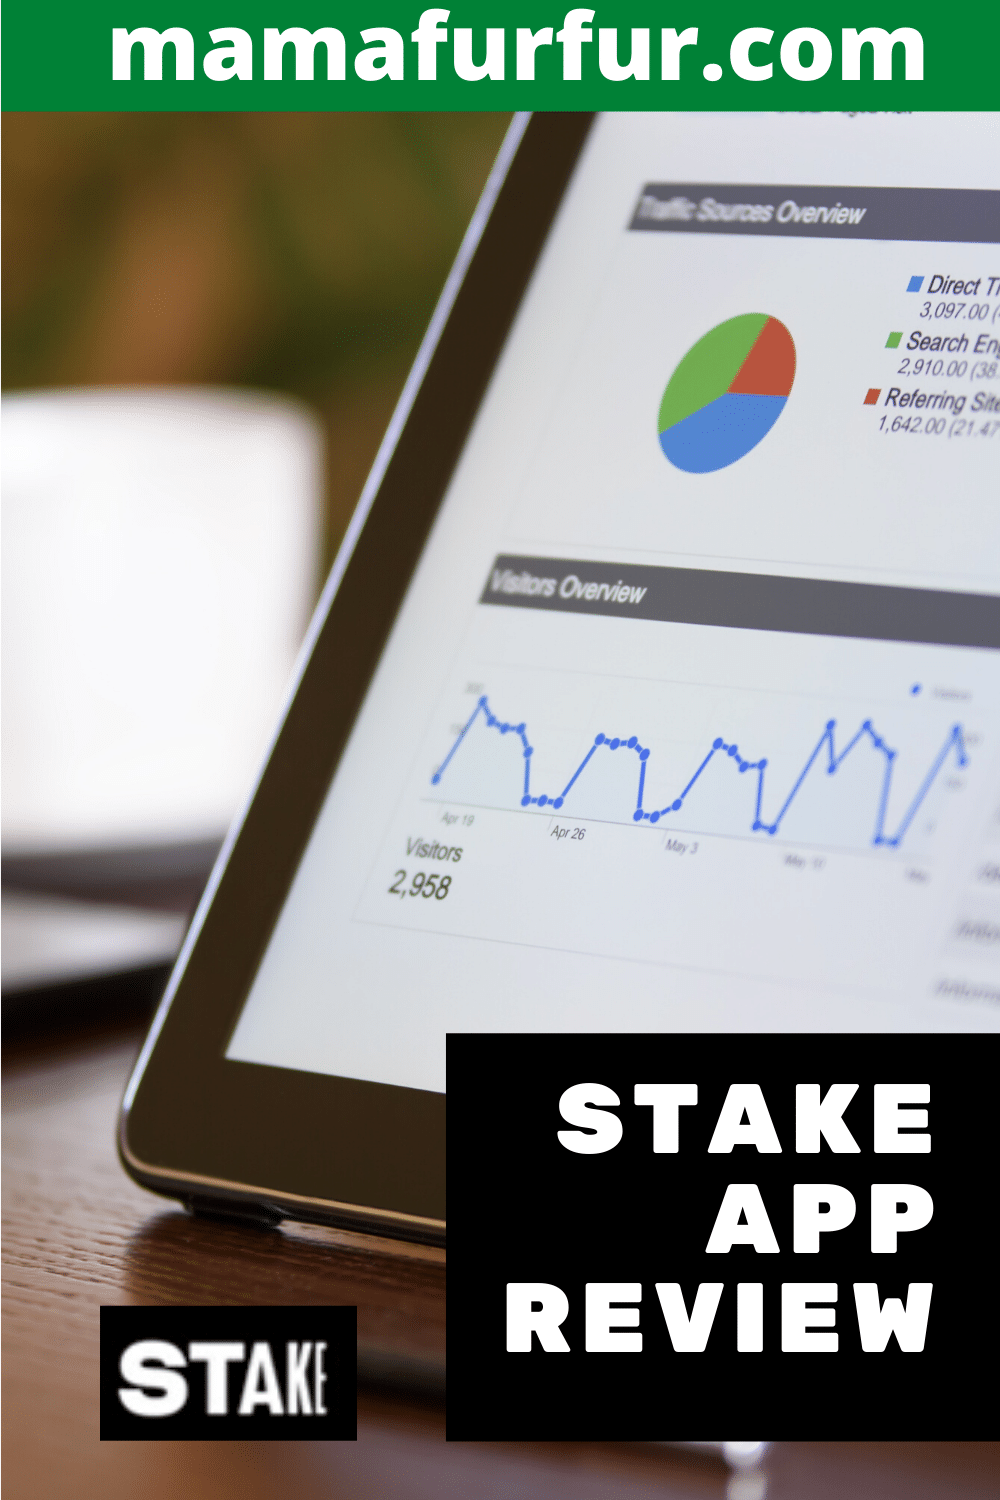 Stake app review 2020 UK - How easy is it to invest with Stake?